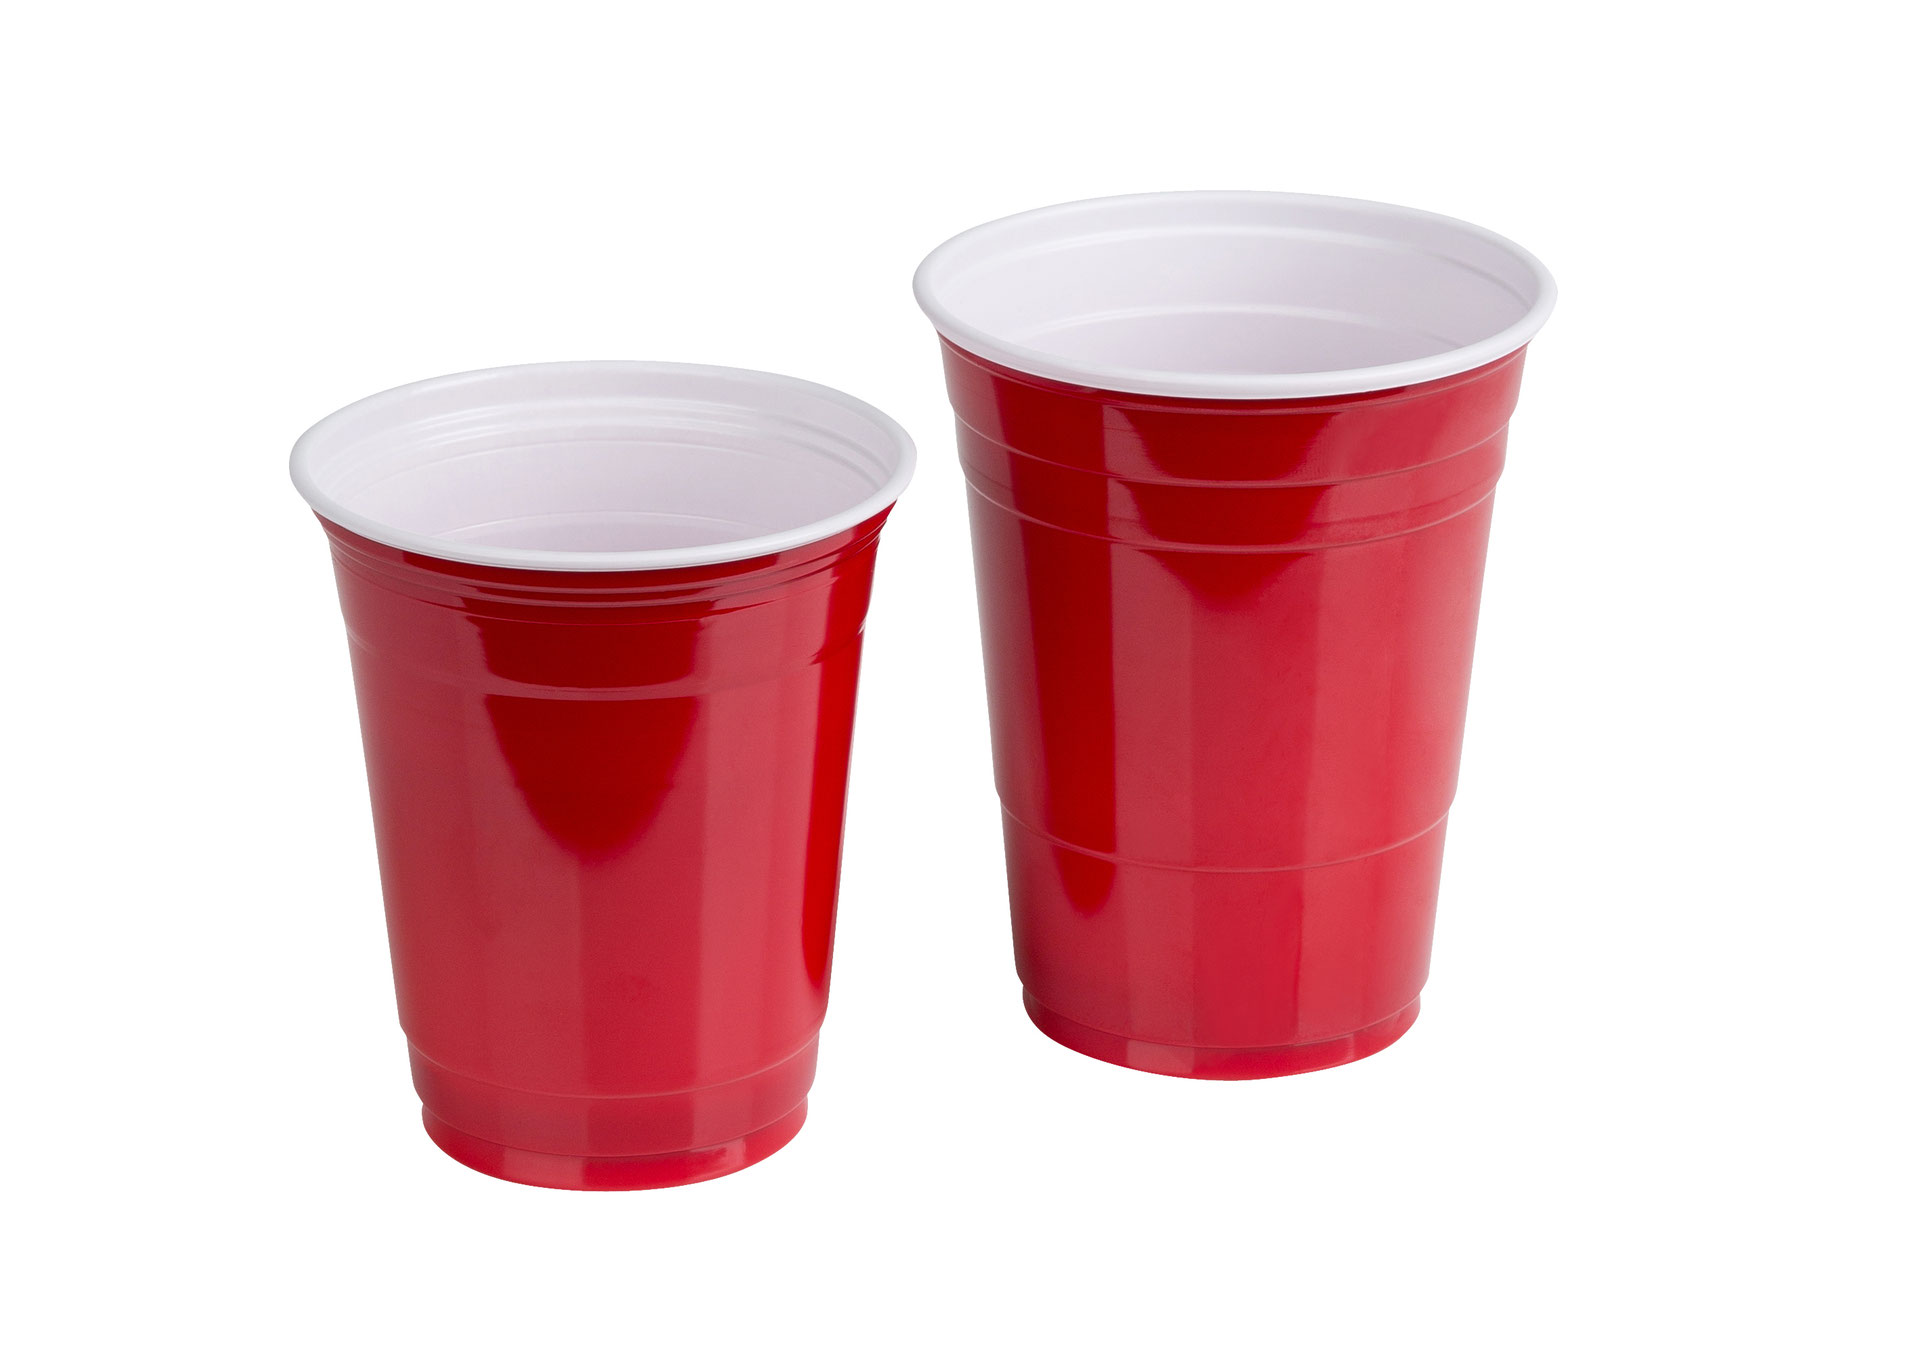 beer pong becher red solo cups kaufen mybeerpong. Black Bedroom Furniture Sets. Home Design Ideas